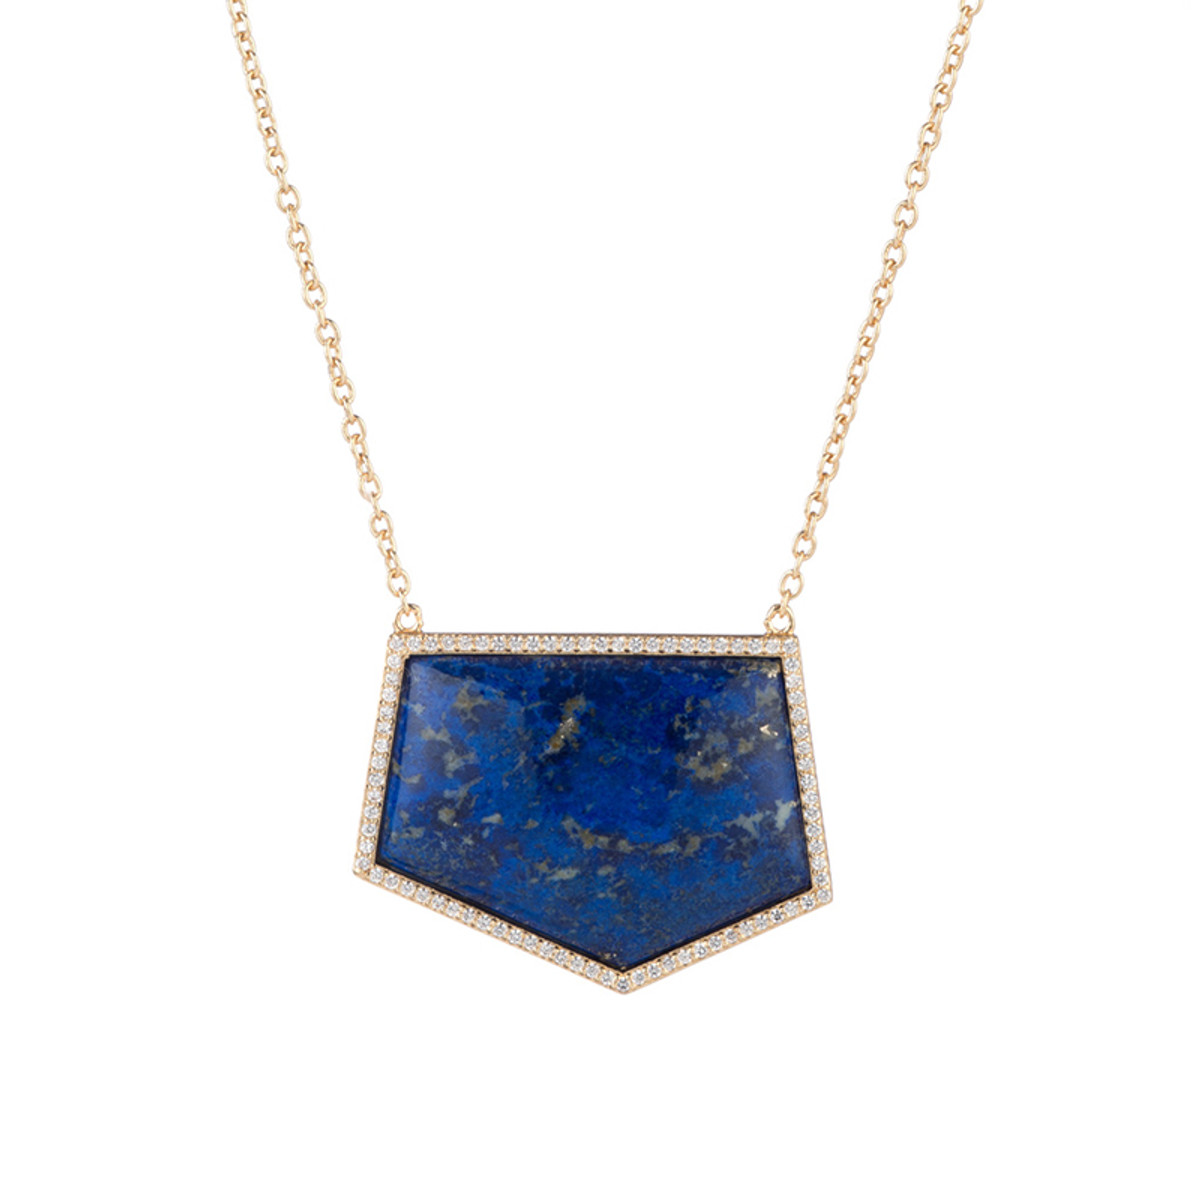 Blue Marcia Moran Jewelry Geometric Shaped Necklace